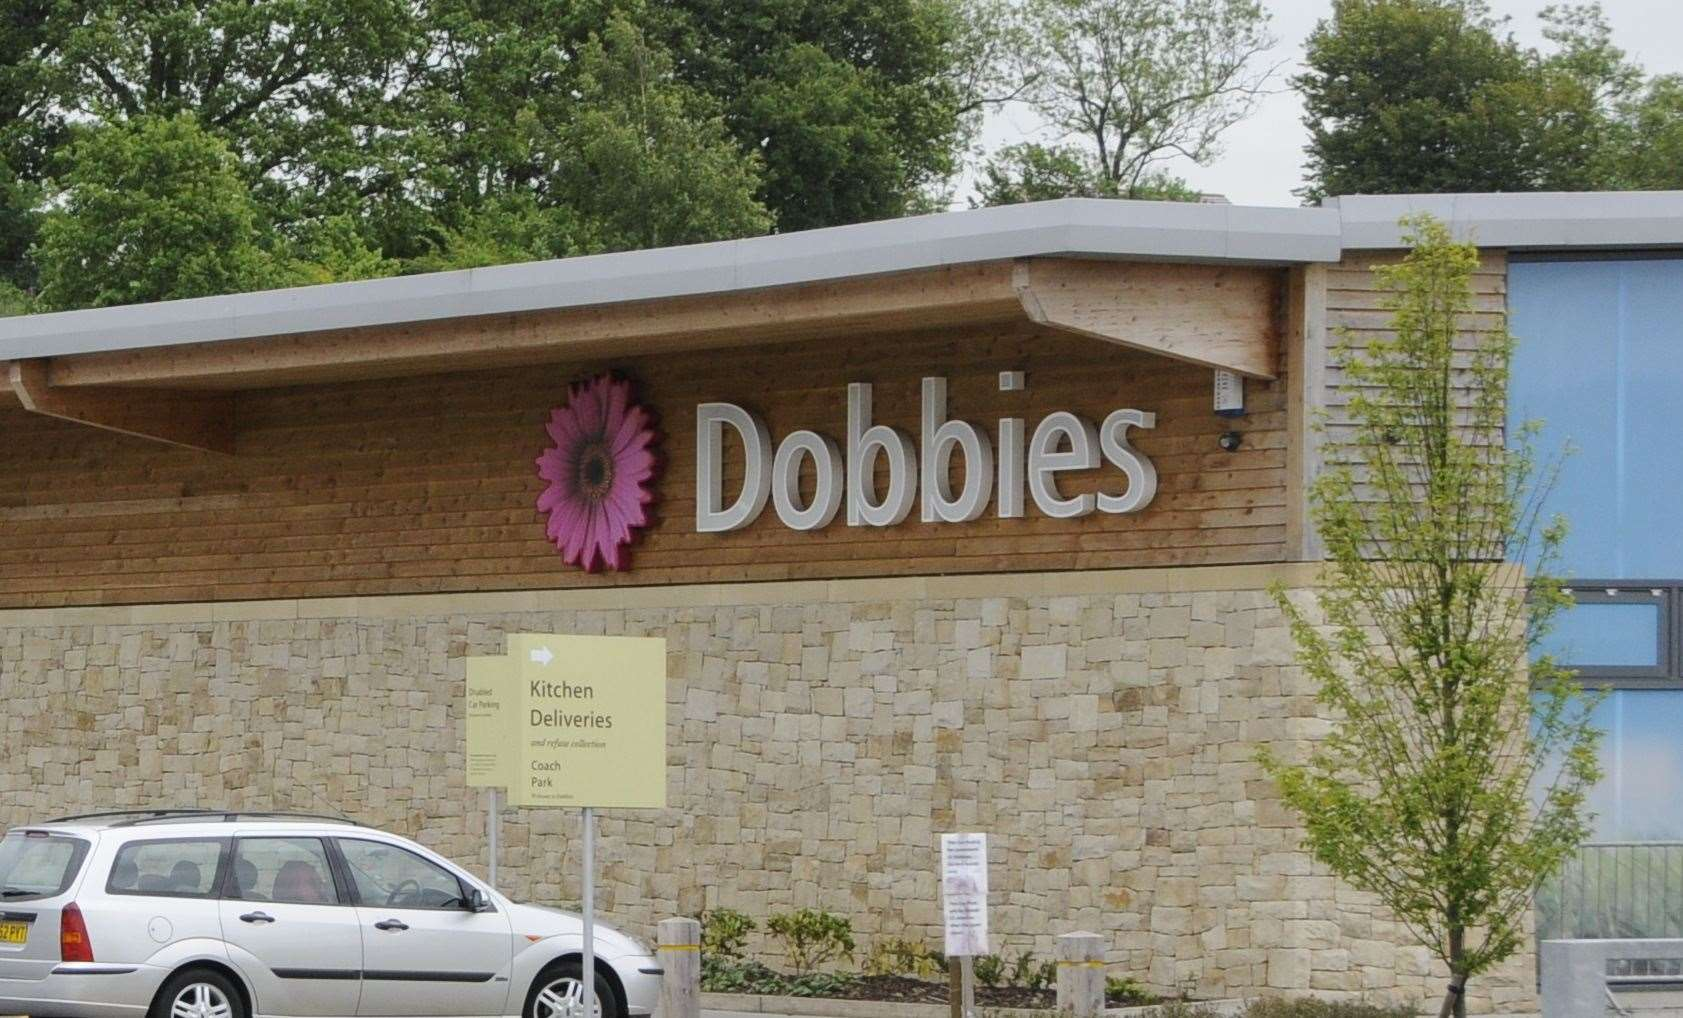 Dobbies has had a presence in the town for a number of years now